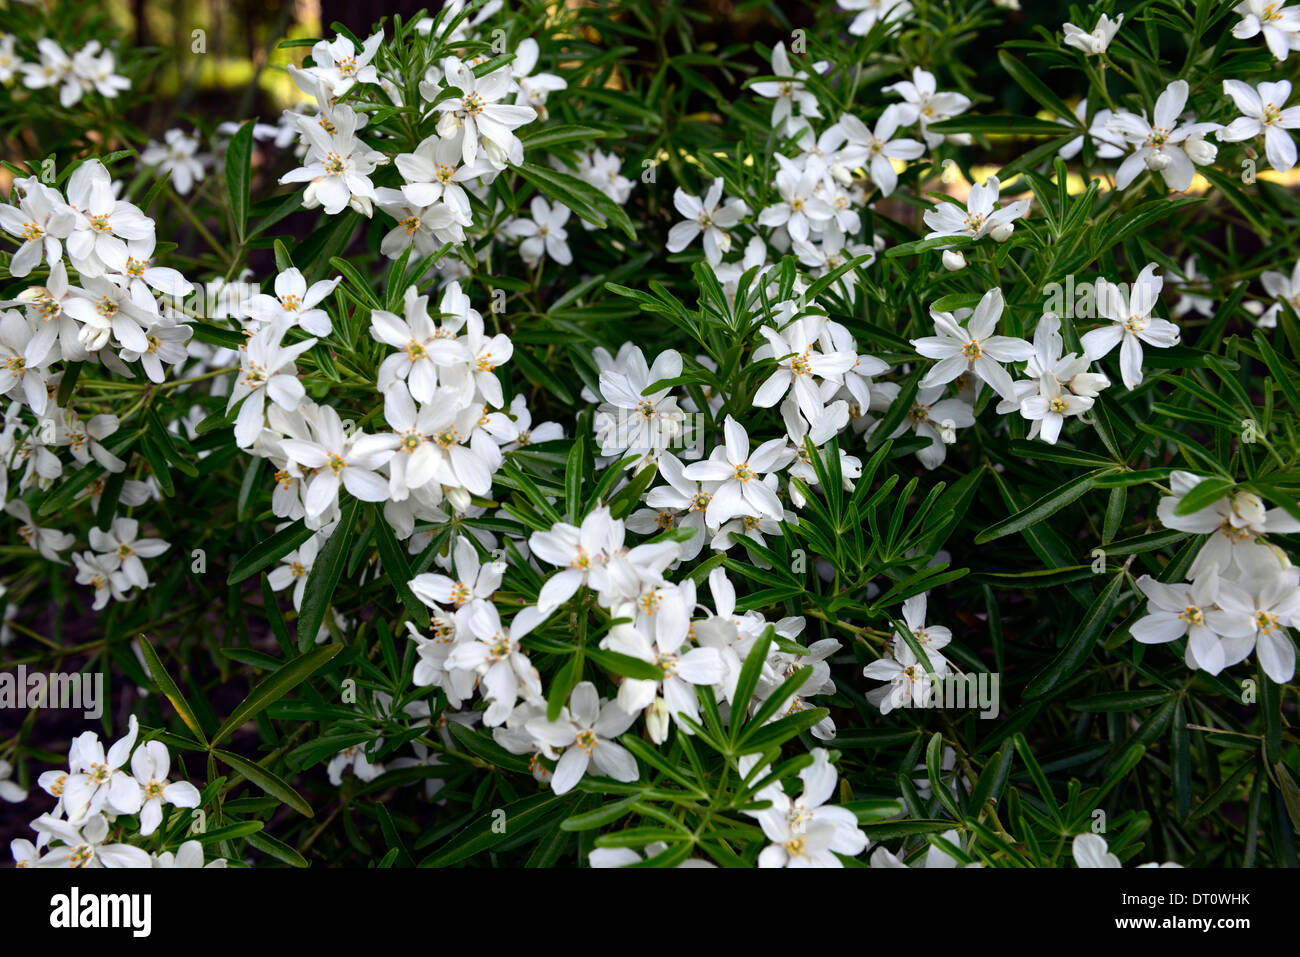 Pearl white stock photos pearl white stock images alamy choisya ternata aztec pearl white flowers flowering deciduous shrubs shrub scented fragrant stock image mightylinksfo